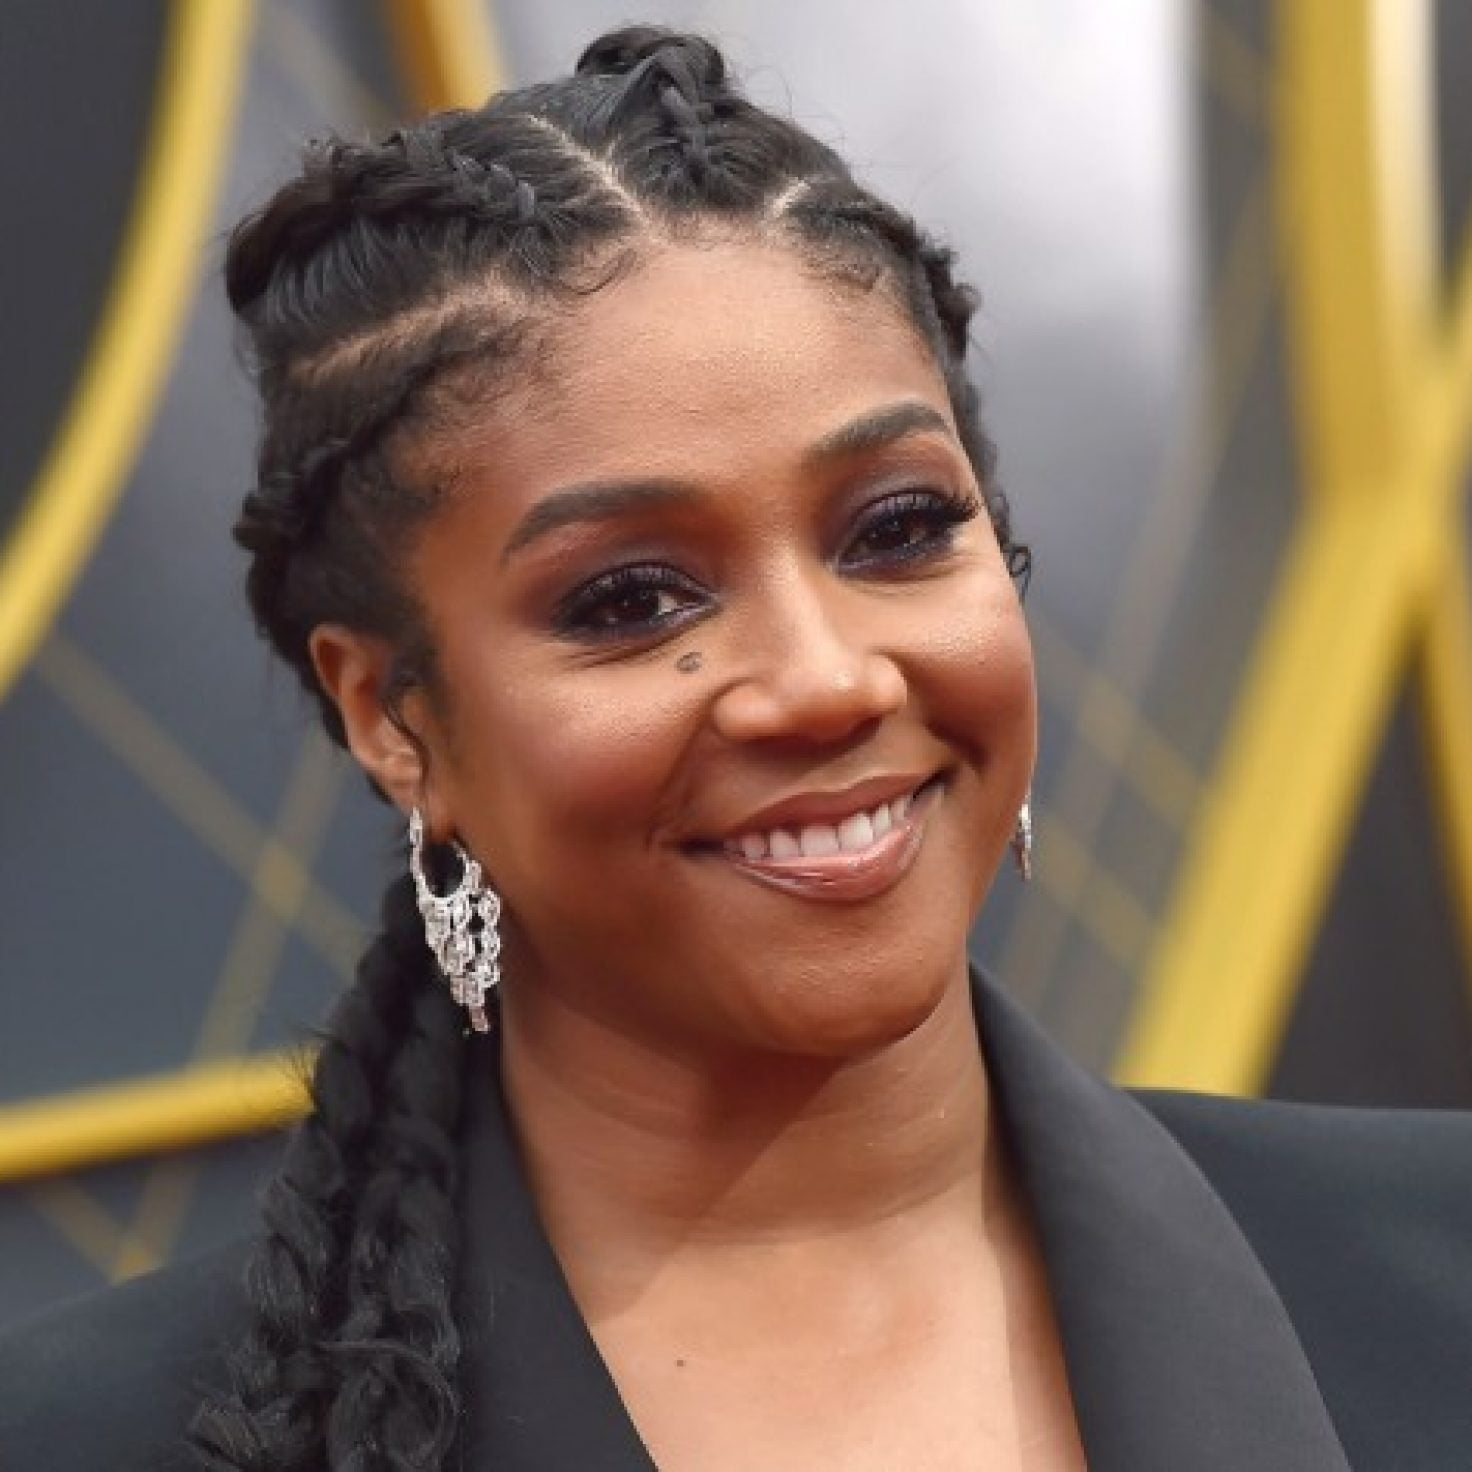 Tiffany Haddish Just Did The Big Chop On Instagram Live